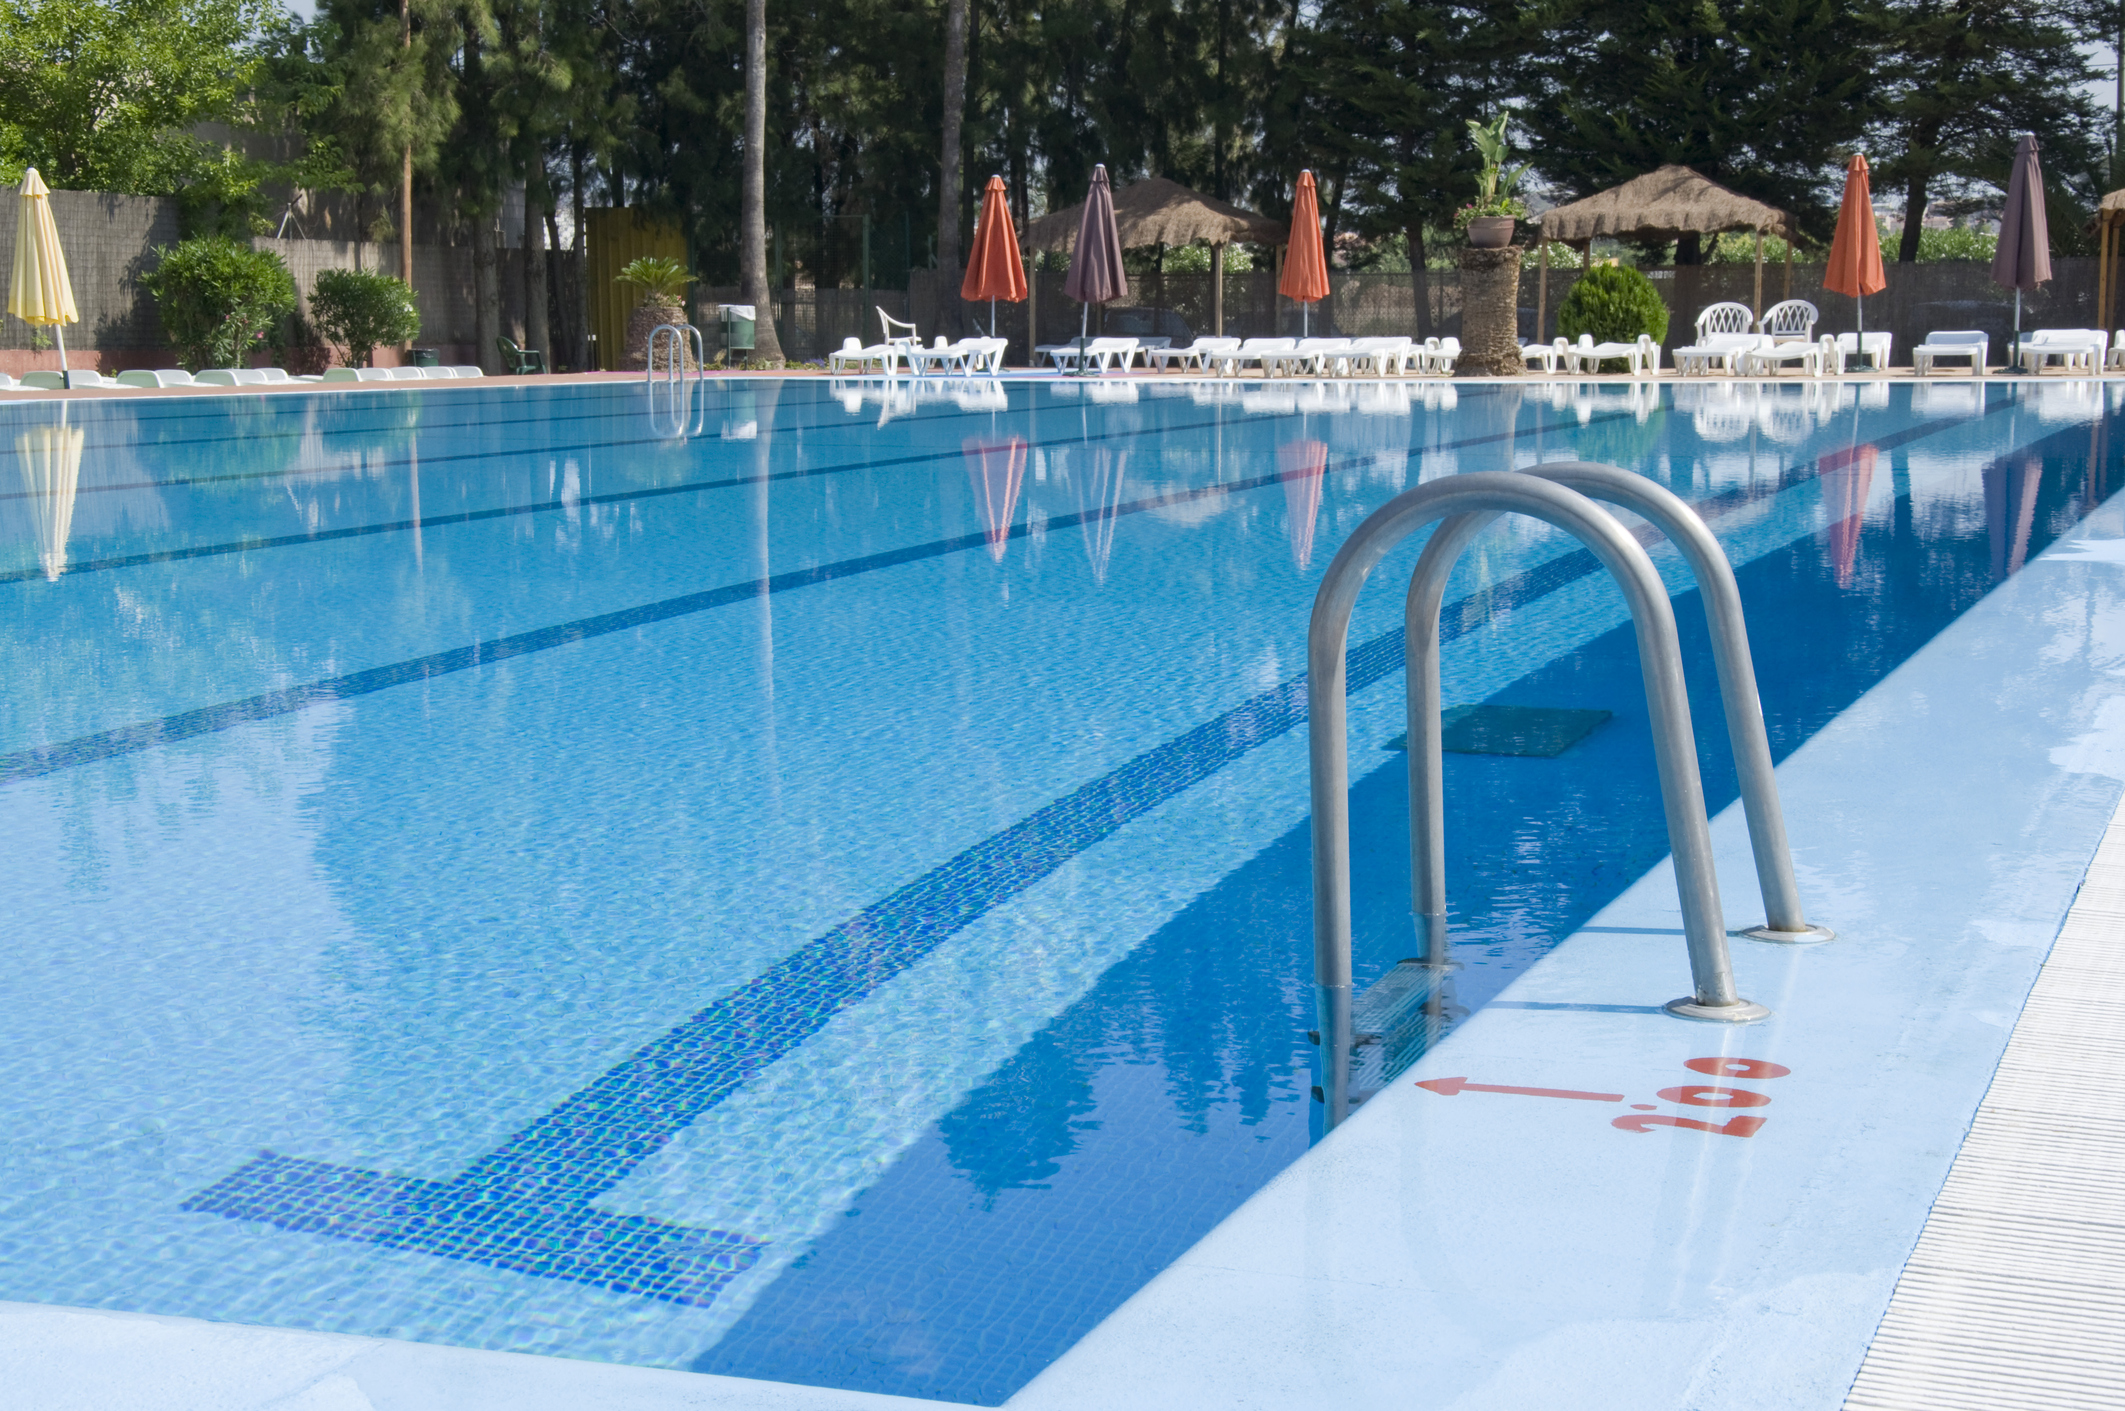 Public pools and hot tubs may pose serious health hazards to ...